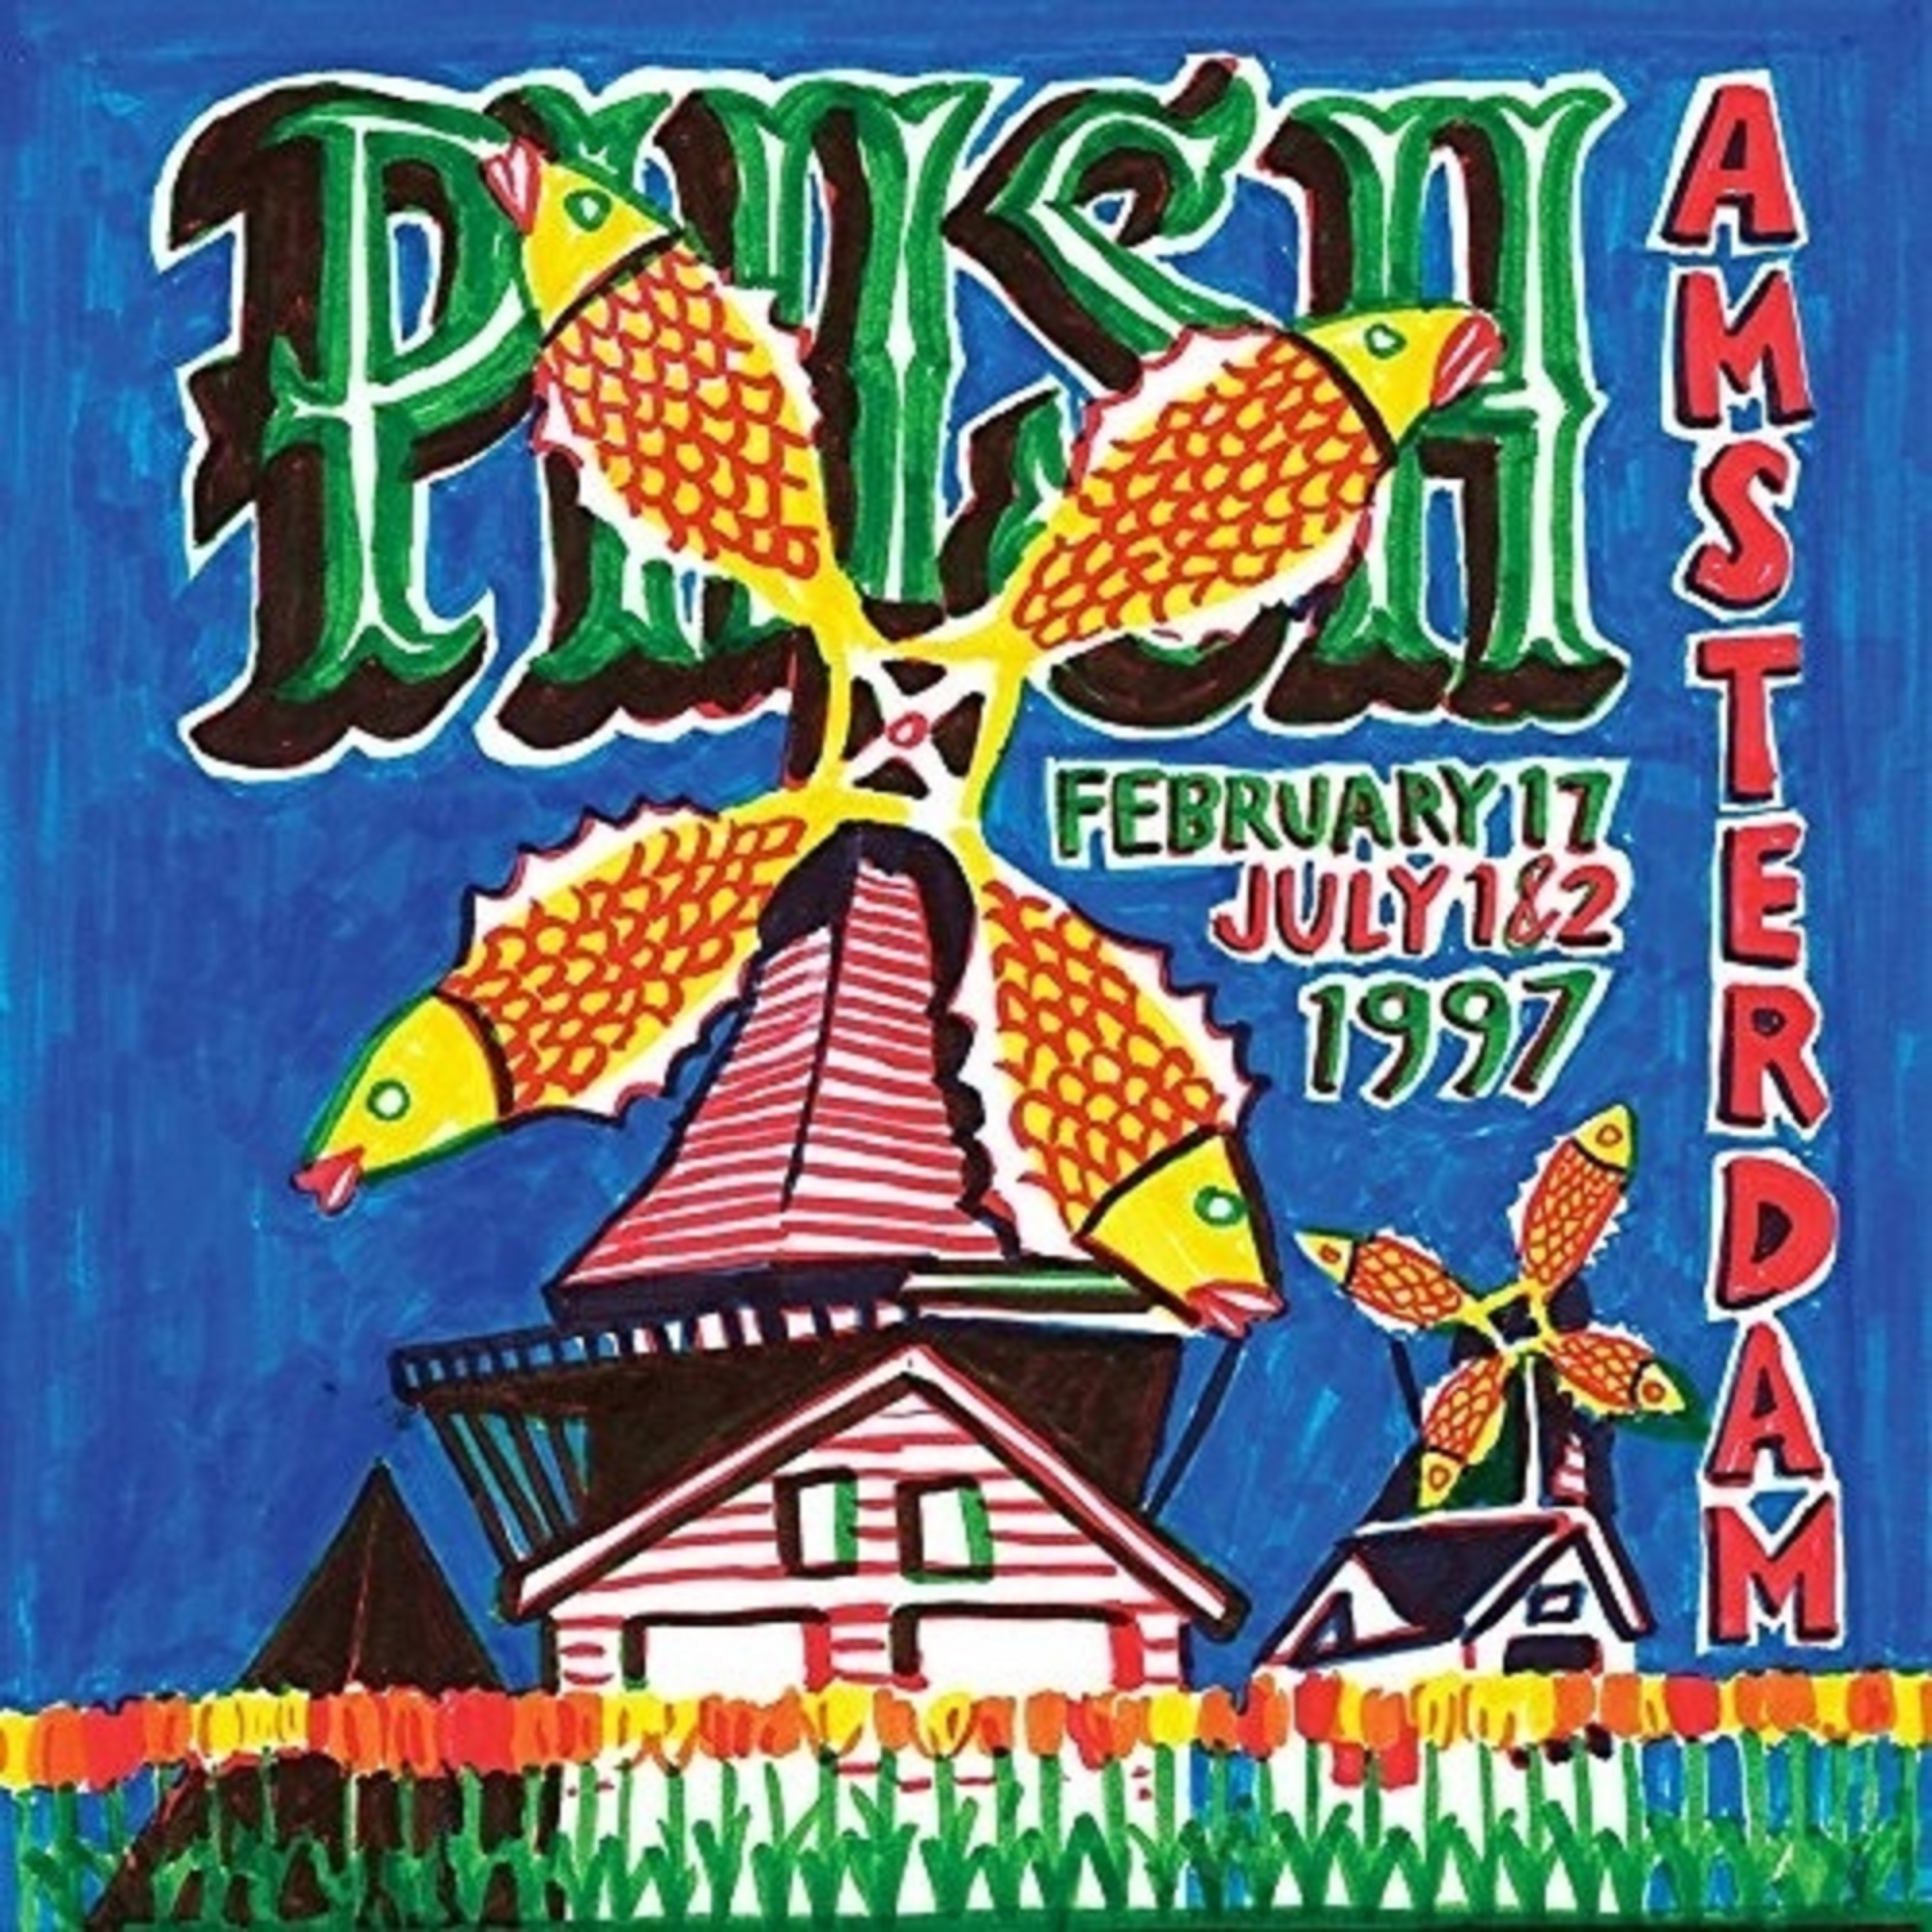 Phish | Amsterdam '97 | Review